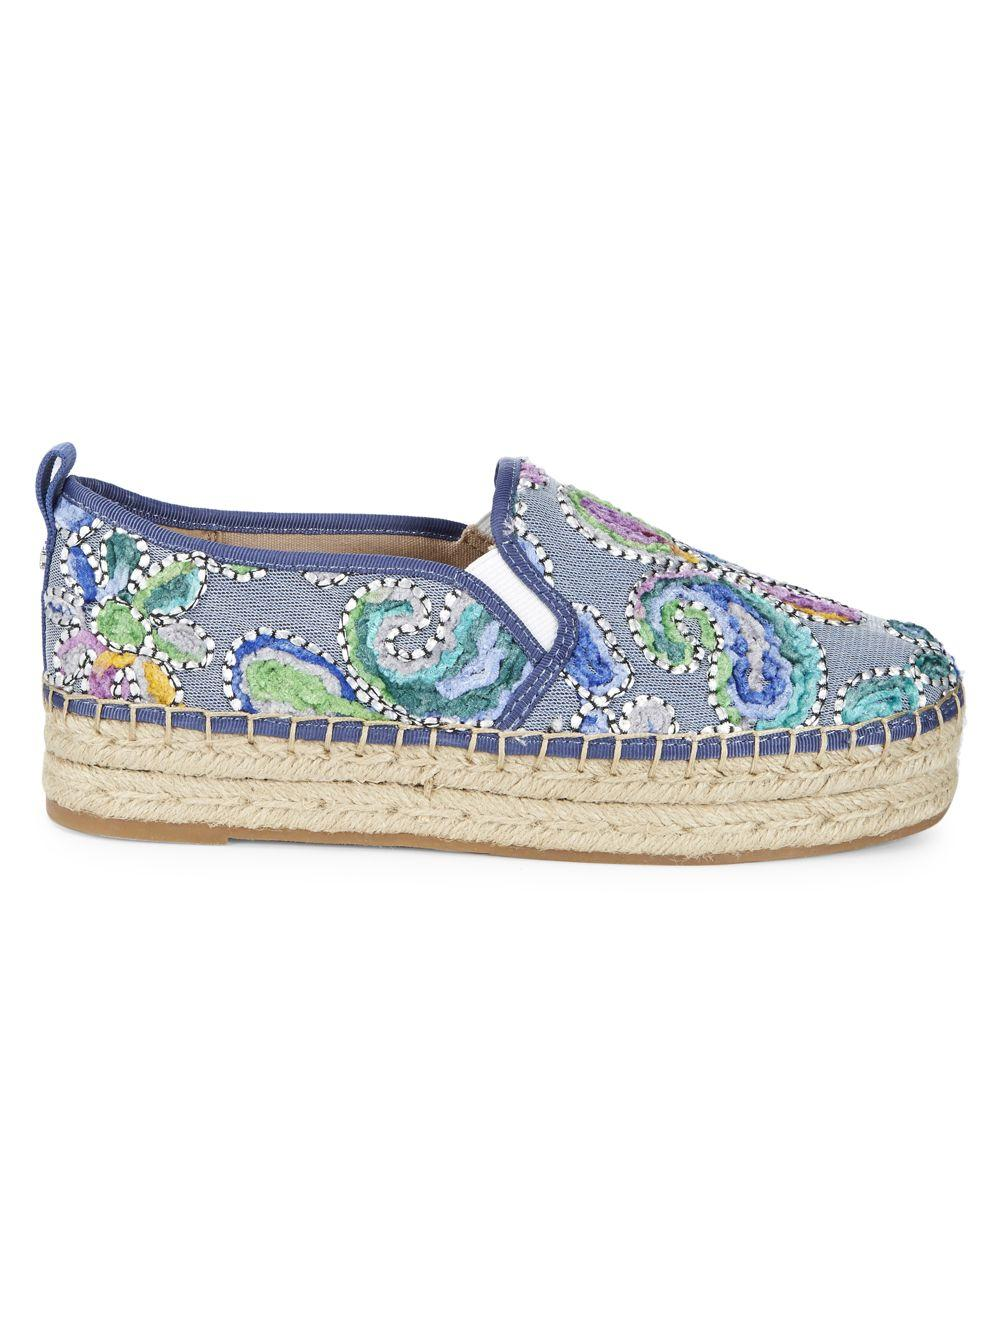 411214c18 Sam Edelman Carrin Embroidered Paisley Espadrilles in Blue - Lyst